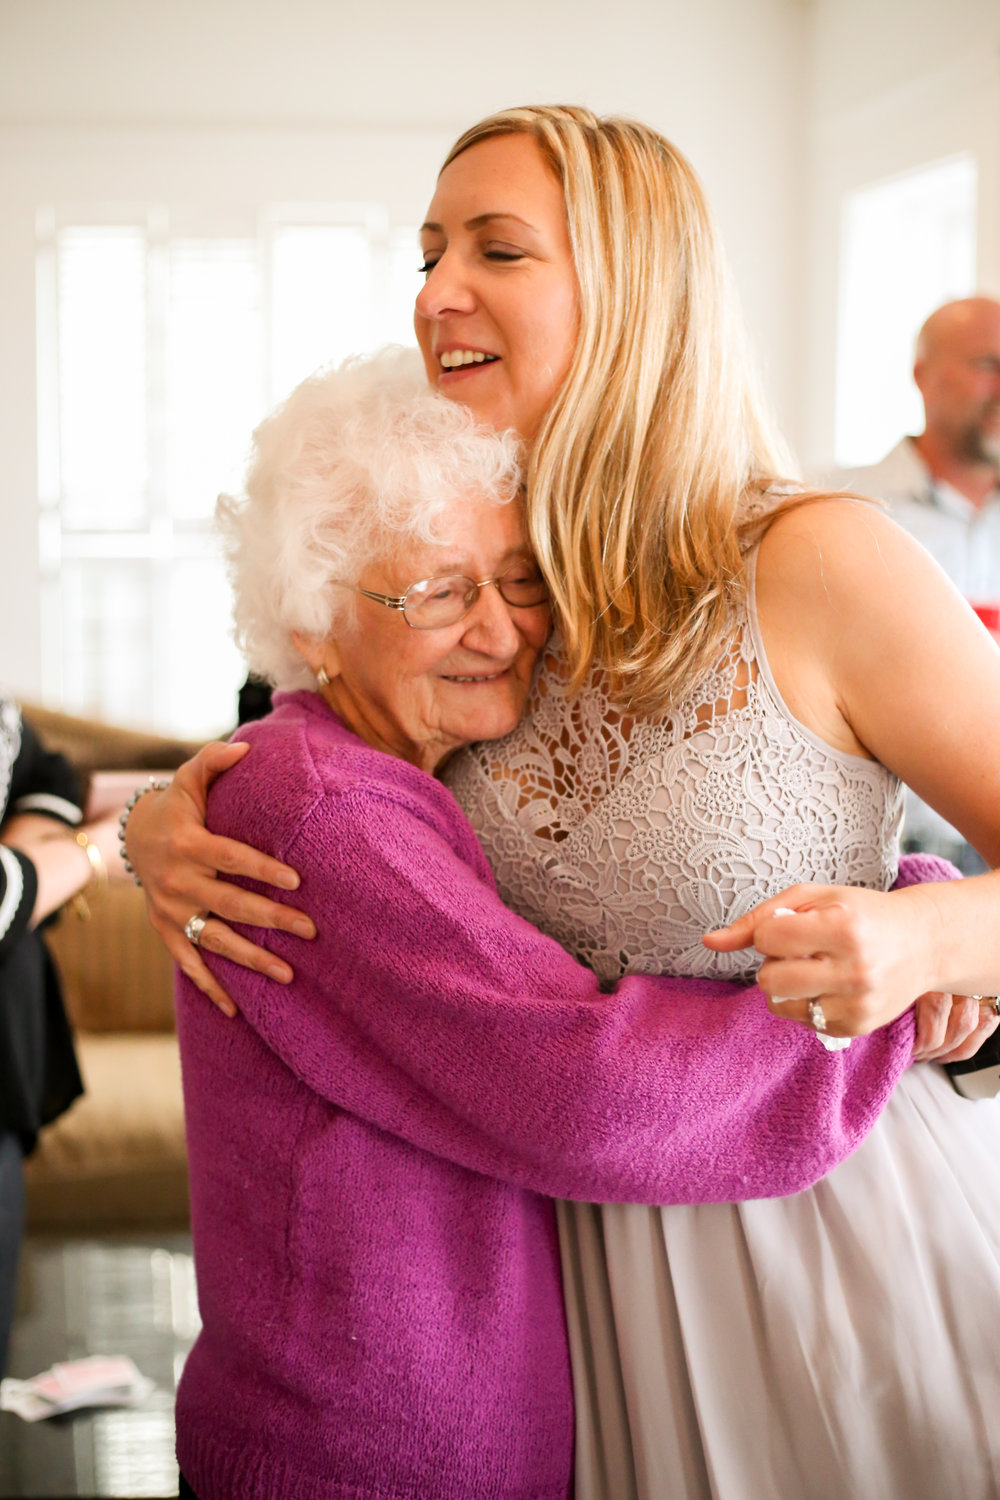 alexandra-rice-photography-pacific-grove-wedding-bride-grandma-hug.jpg